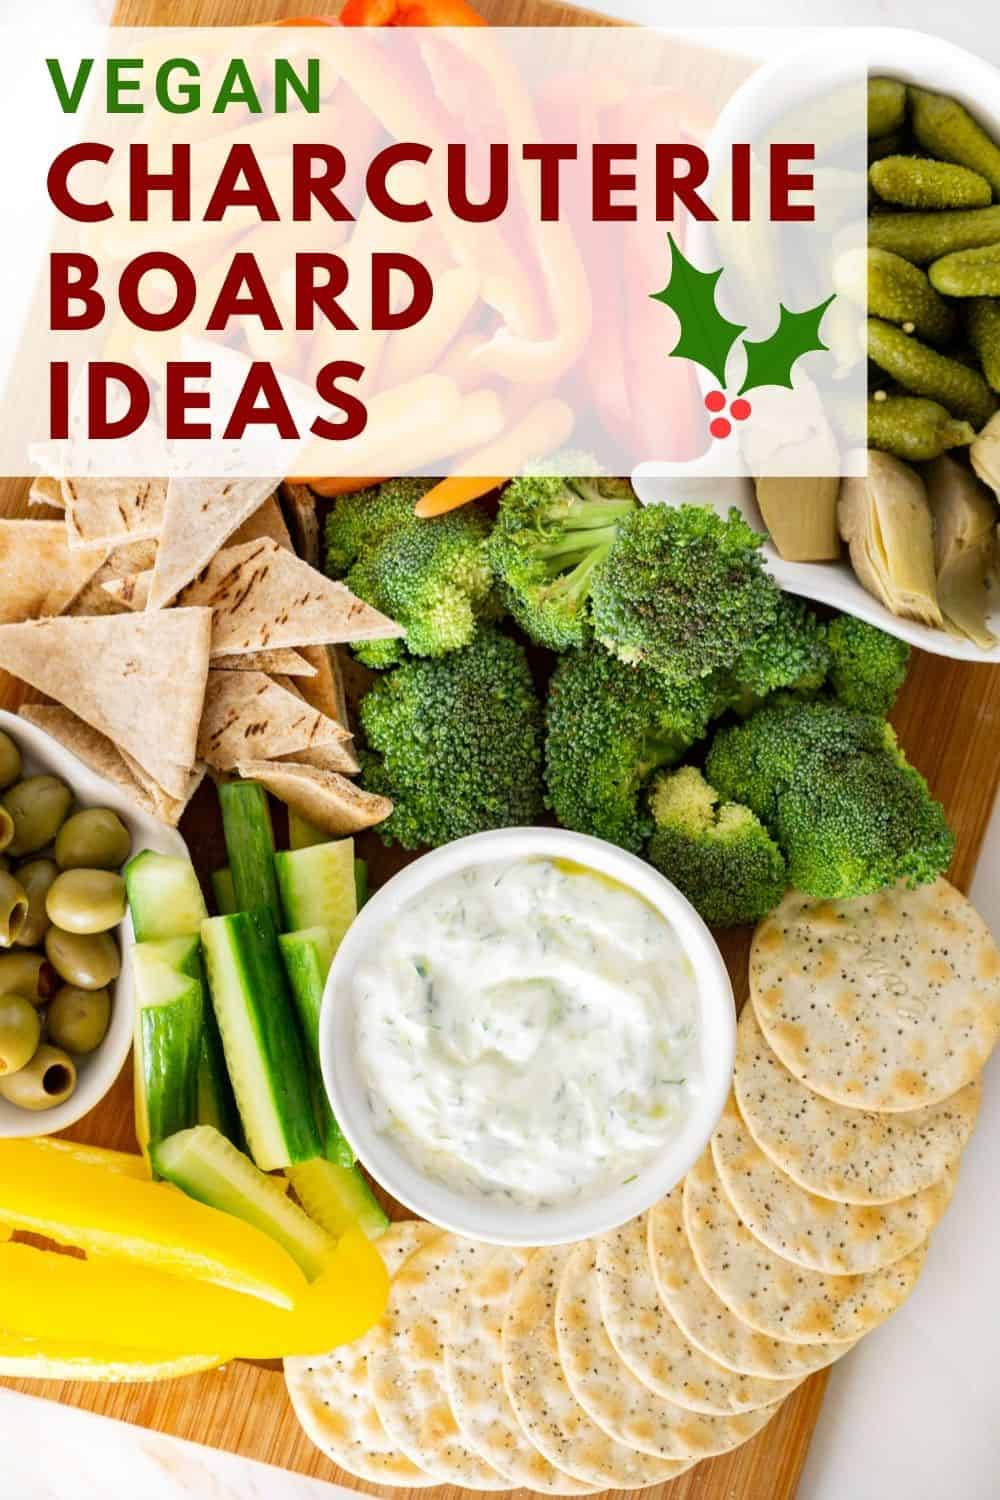 pinnable image of vegan charcuterie board ideas